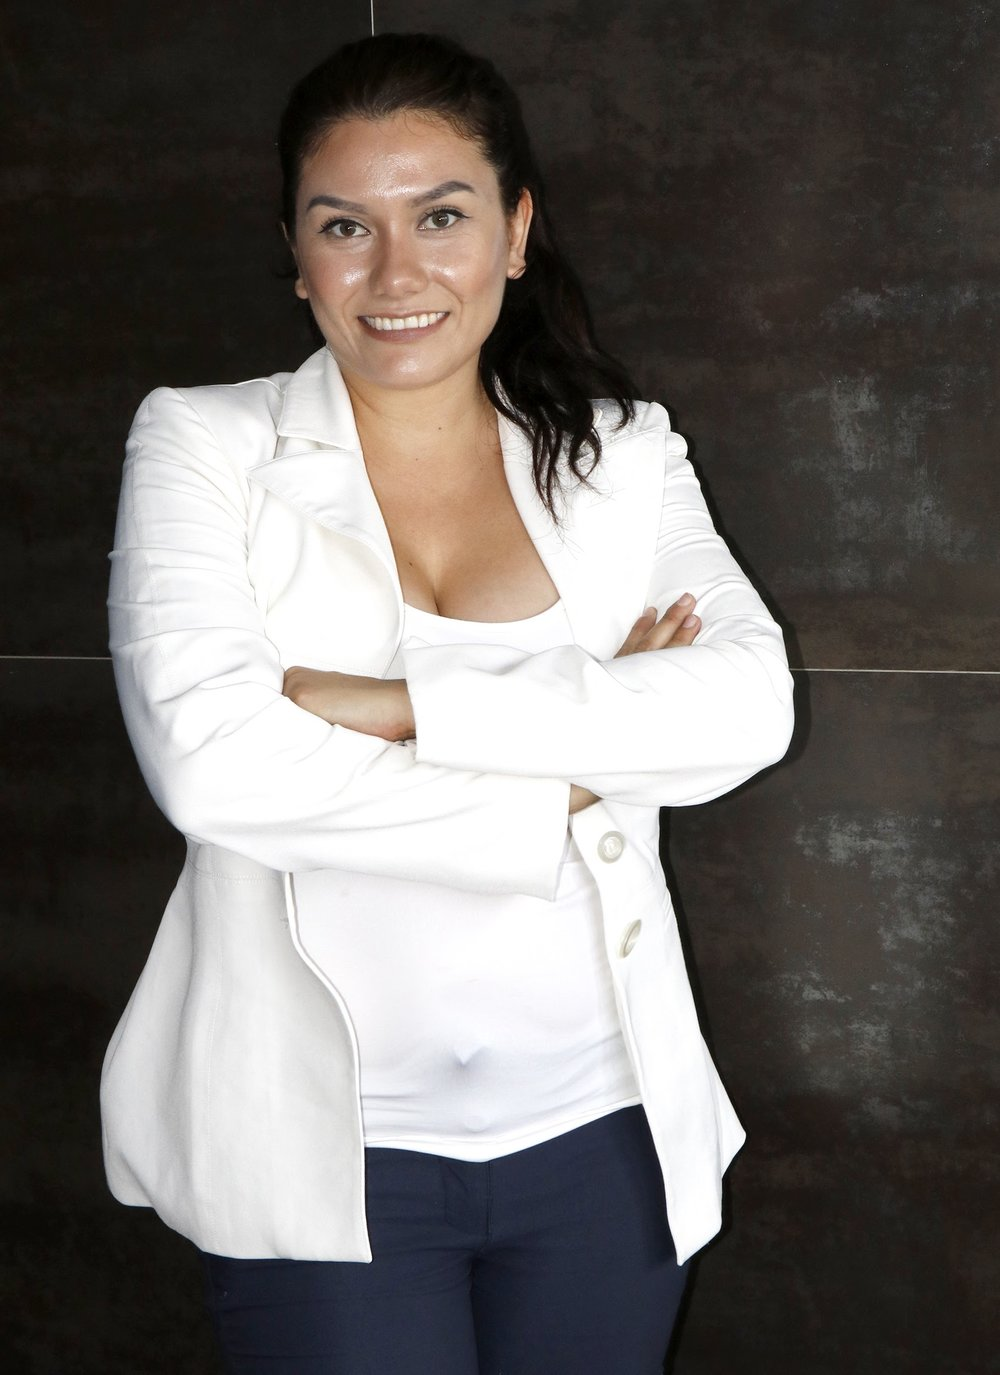 Claudia Human Resources Manager